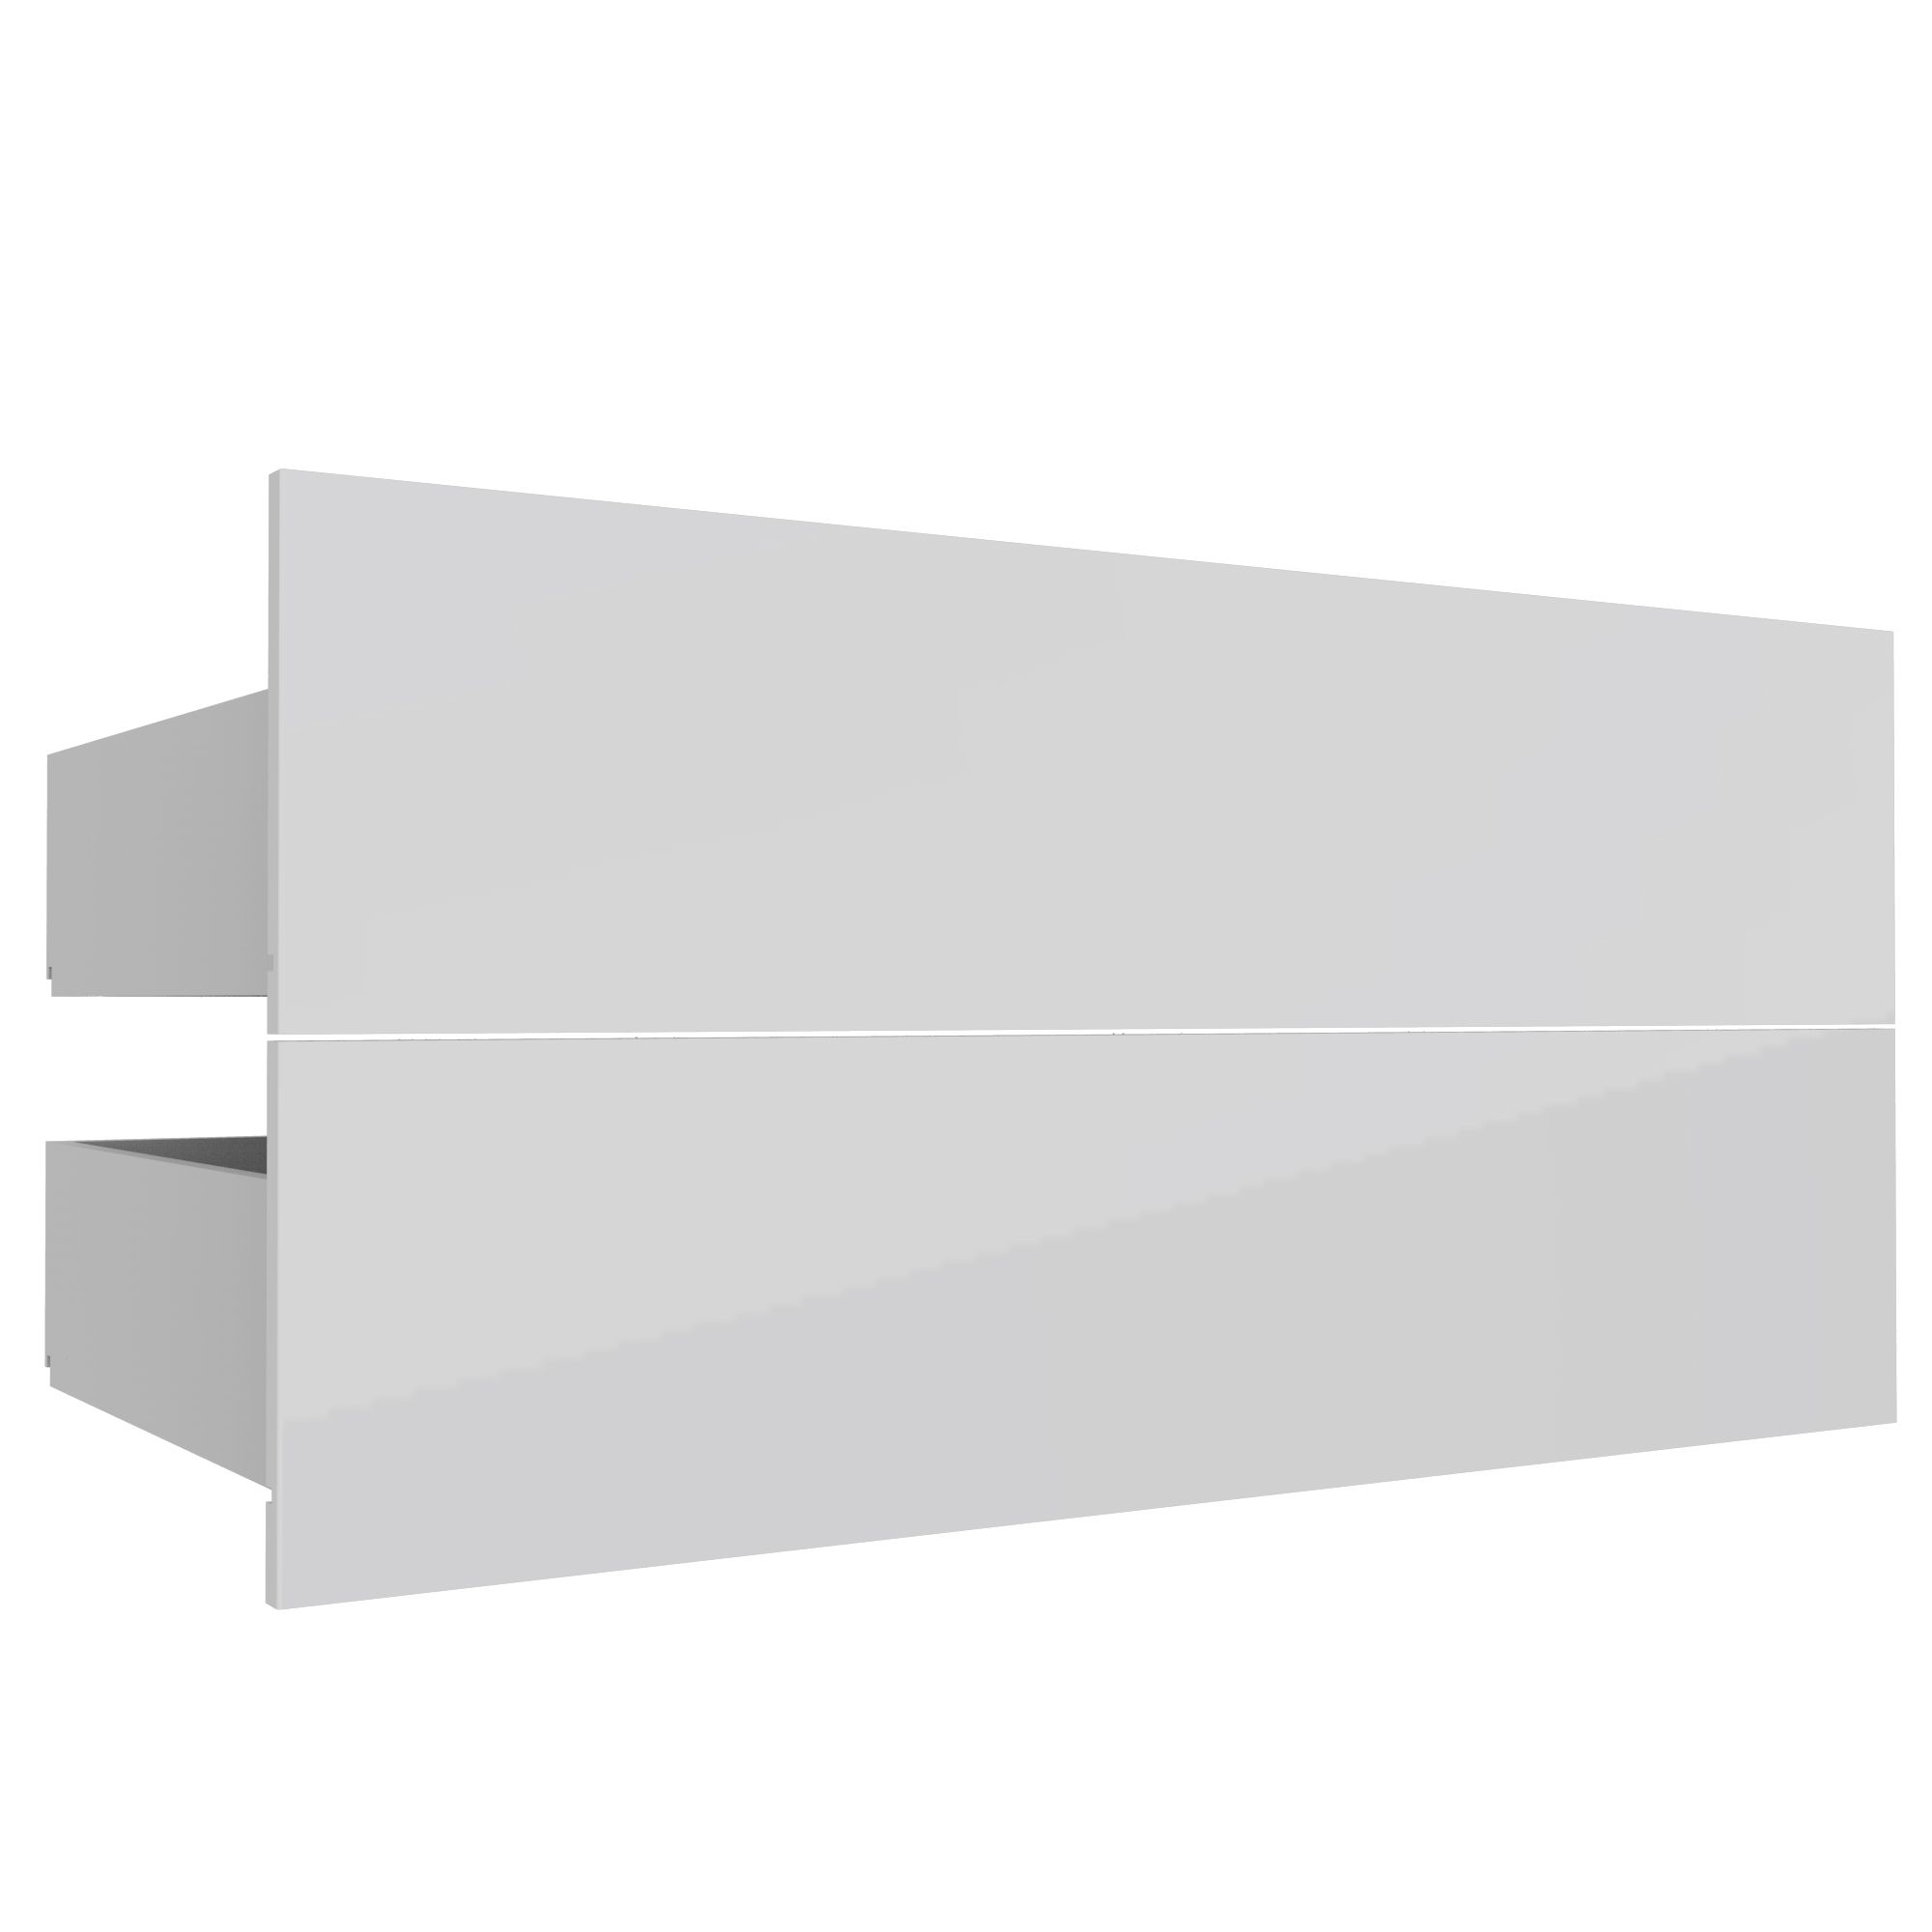 Darwin Modular White & Gloss External Drawers (h)237mm (w)1000mm (d)566mm